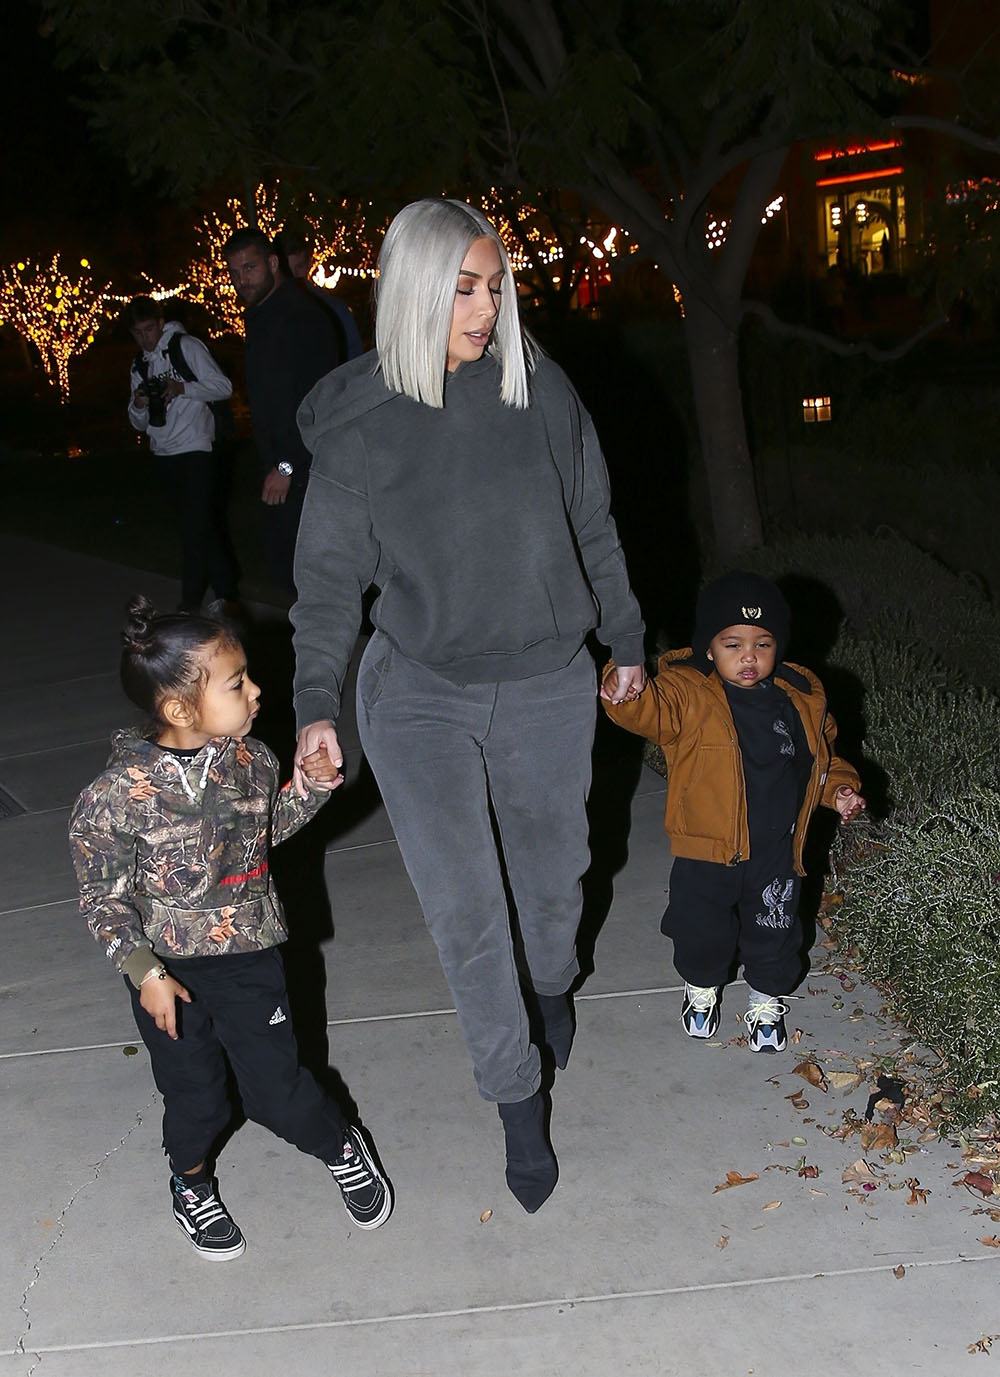 Kim Kardashian & Kourtney Kardashian take the kids ice skating